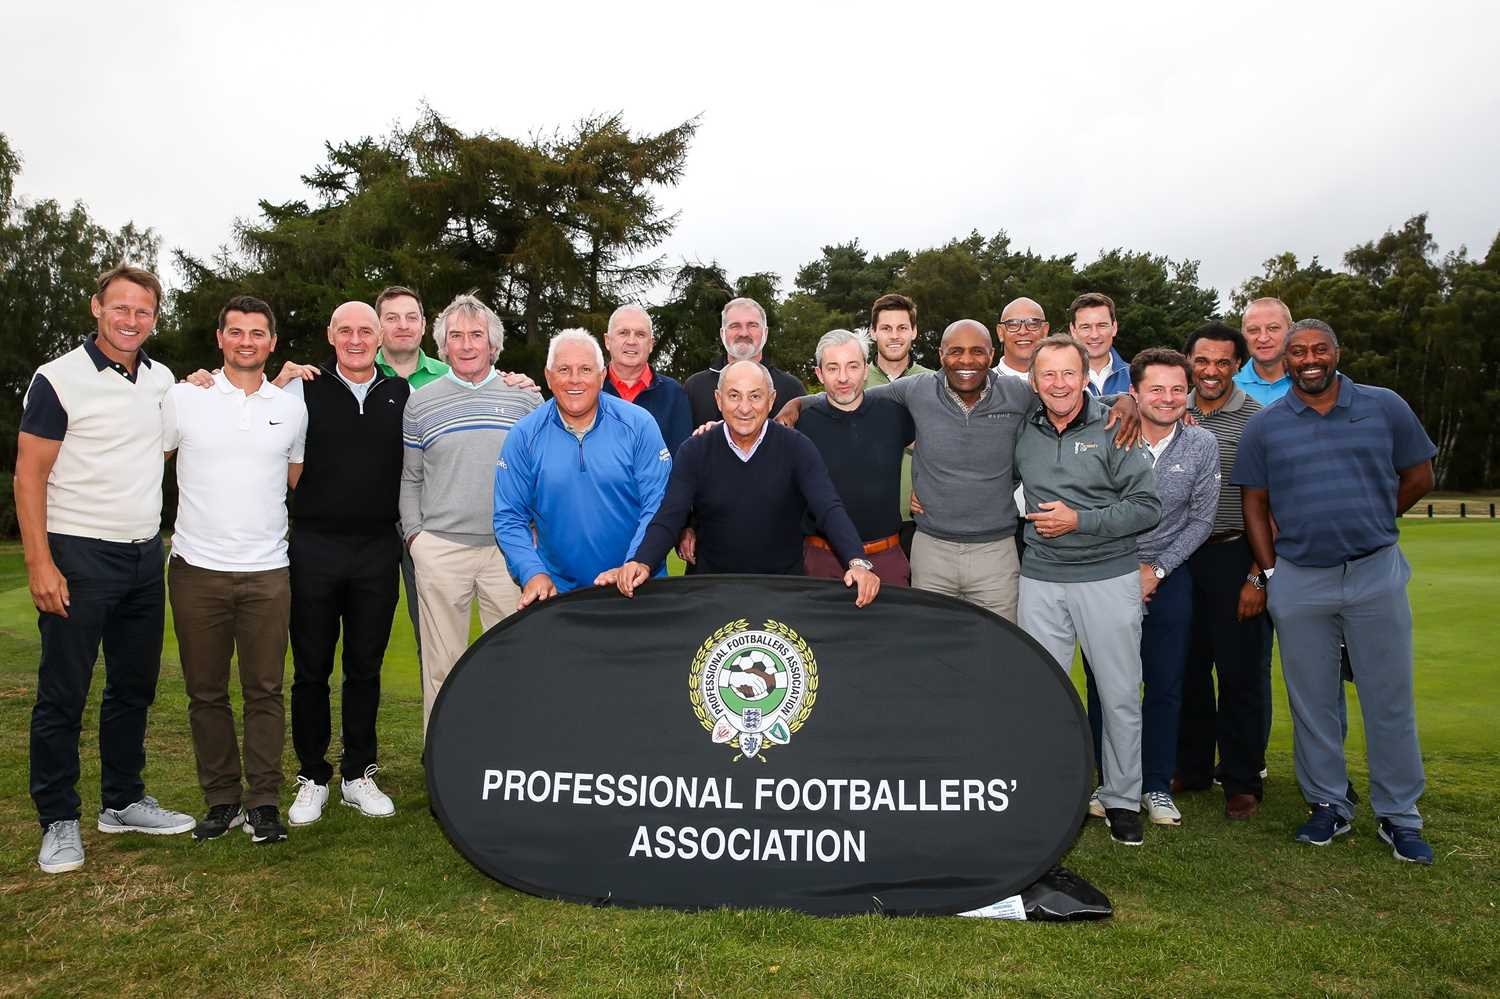 The Professional Footballers Association (PFA) Invites You and 2 guests to their Annual Golf